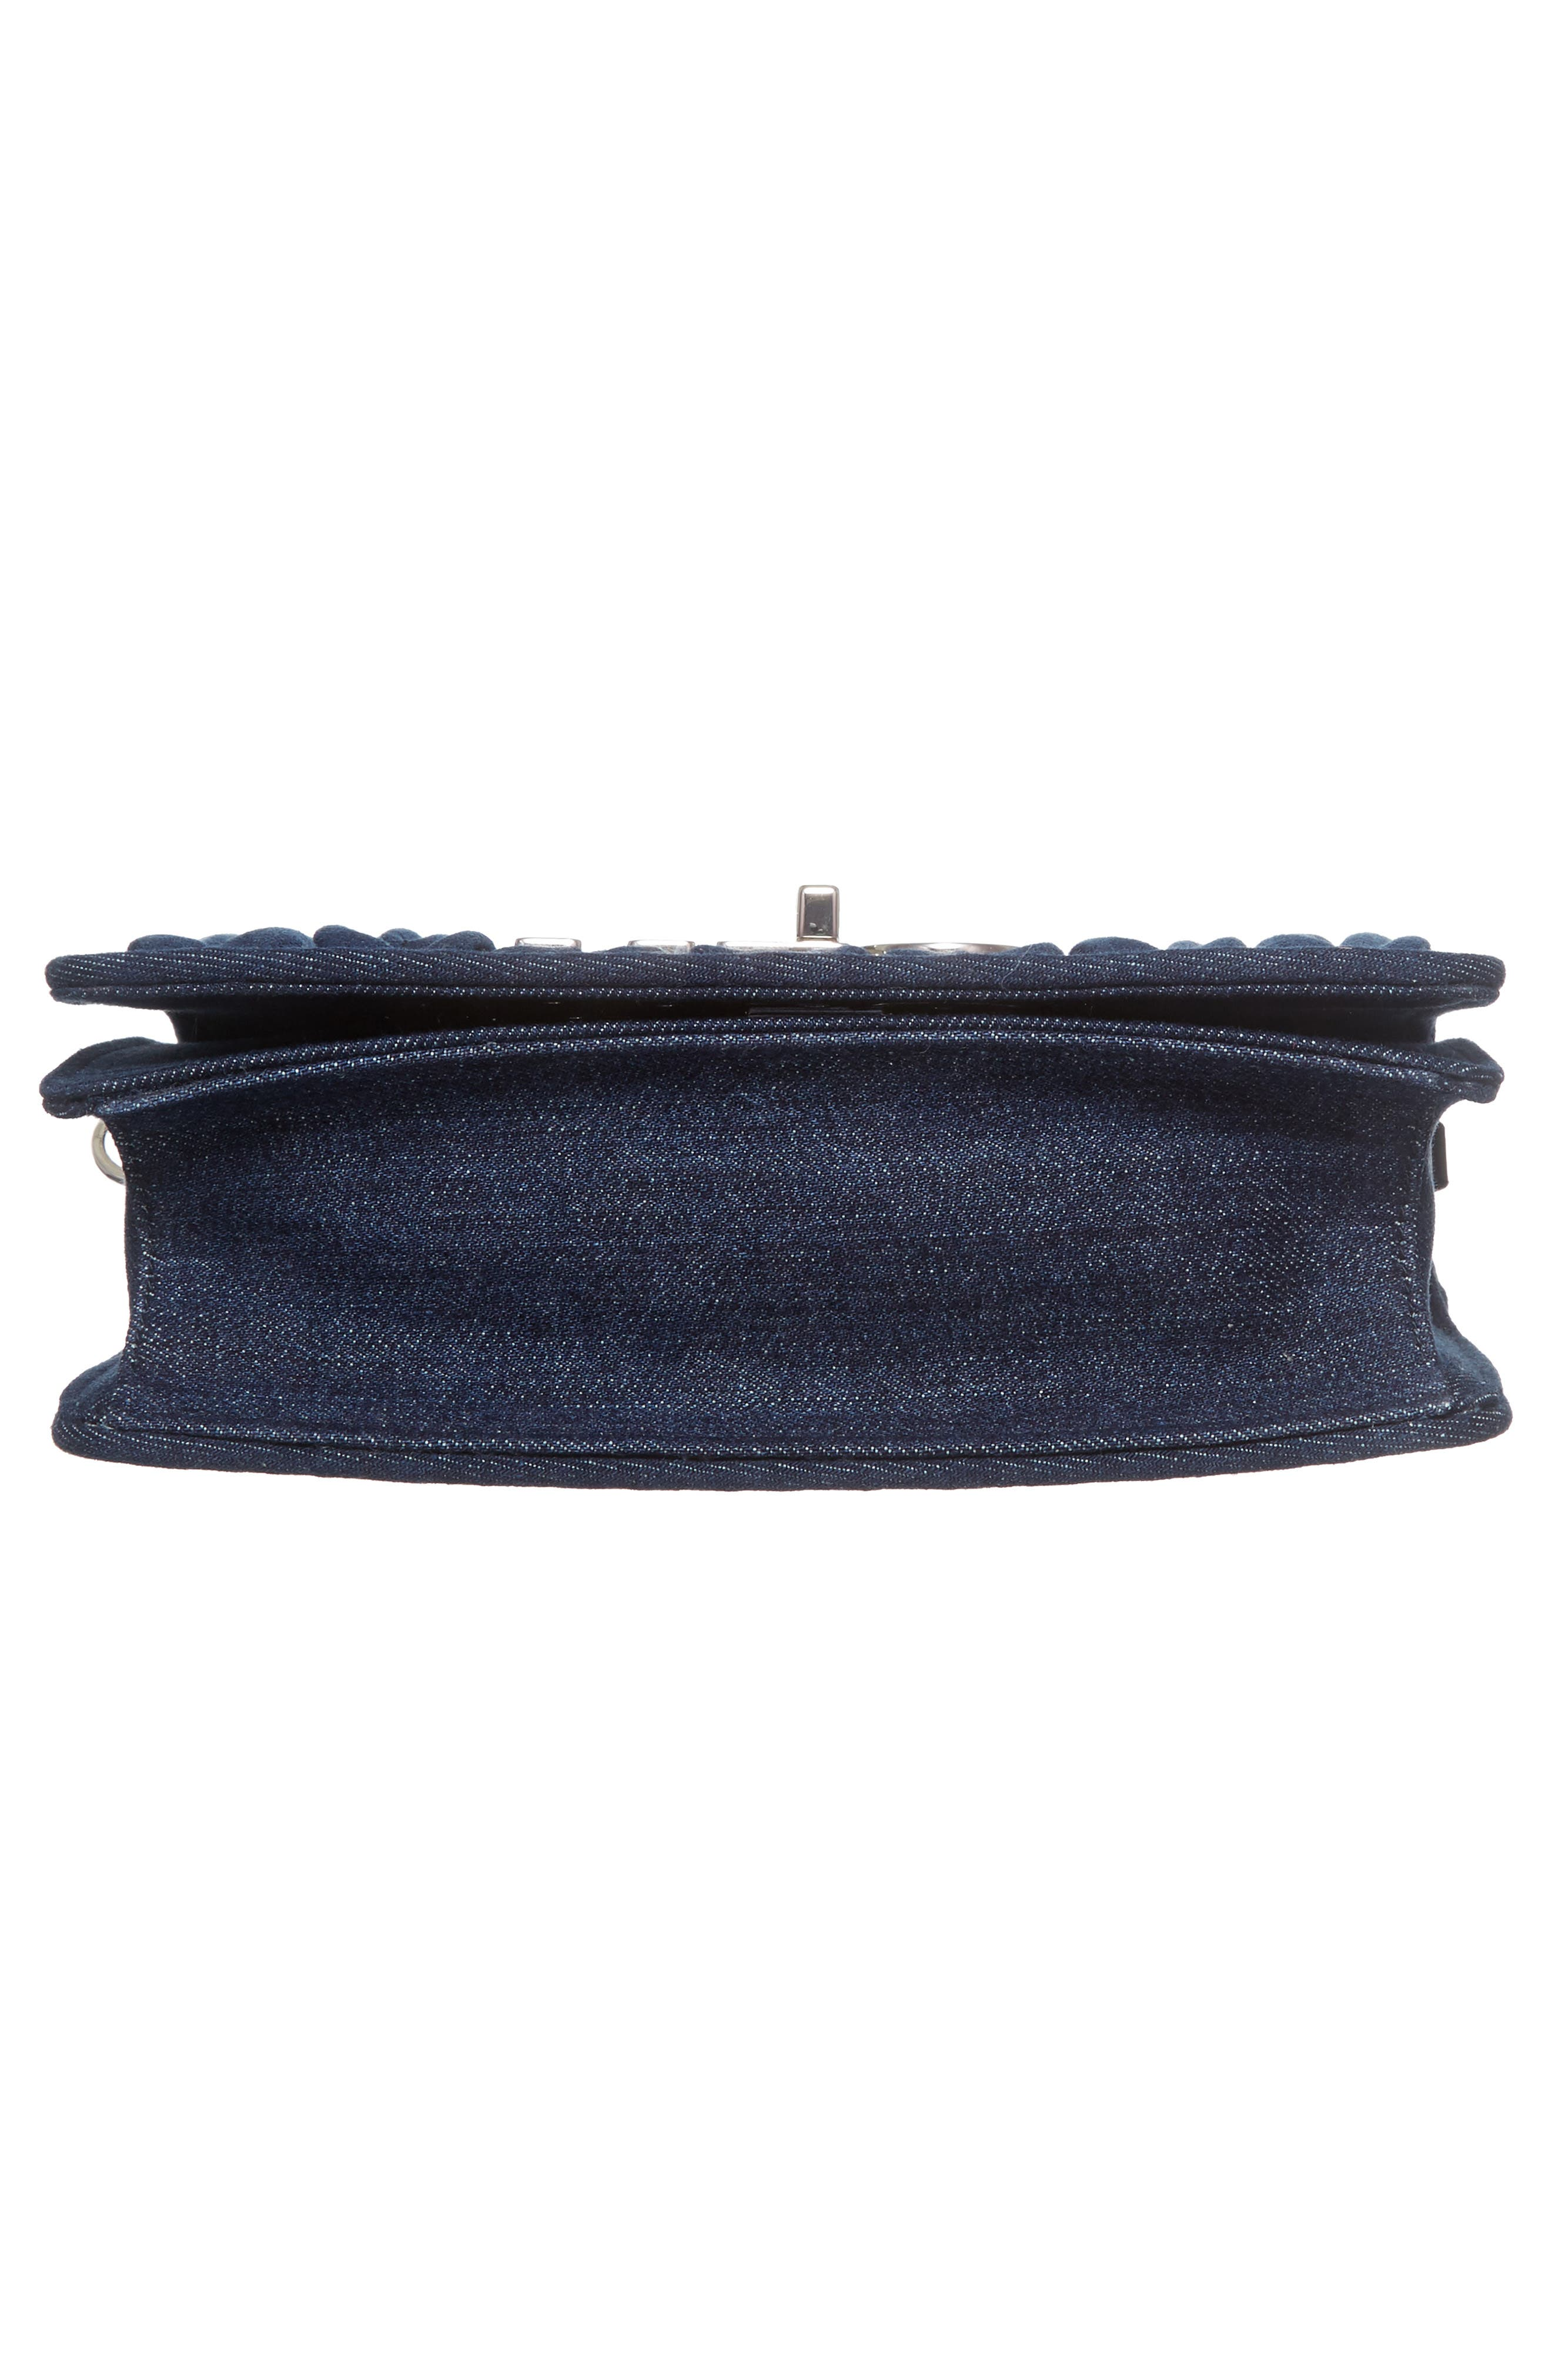 Matelassé Denim Crossbody Clutch,                             Alternate thumbnail 5, color,                             Bleu